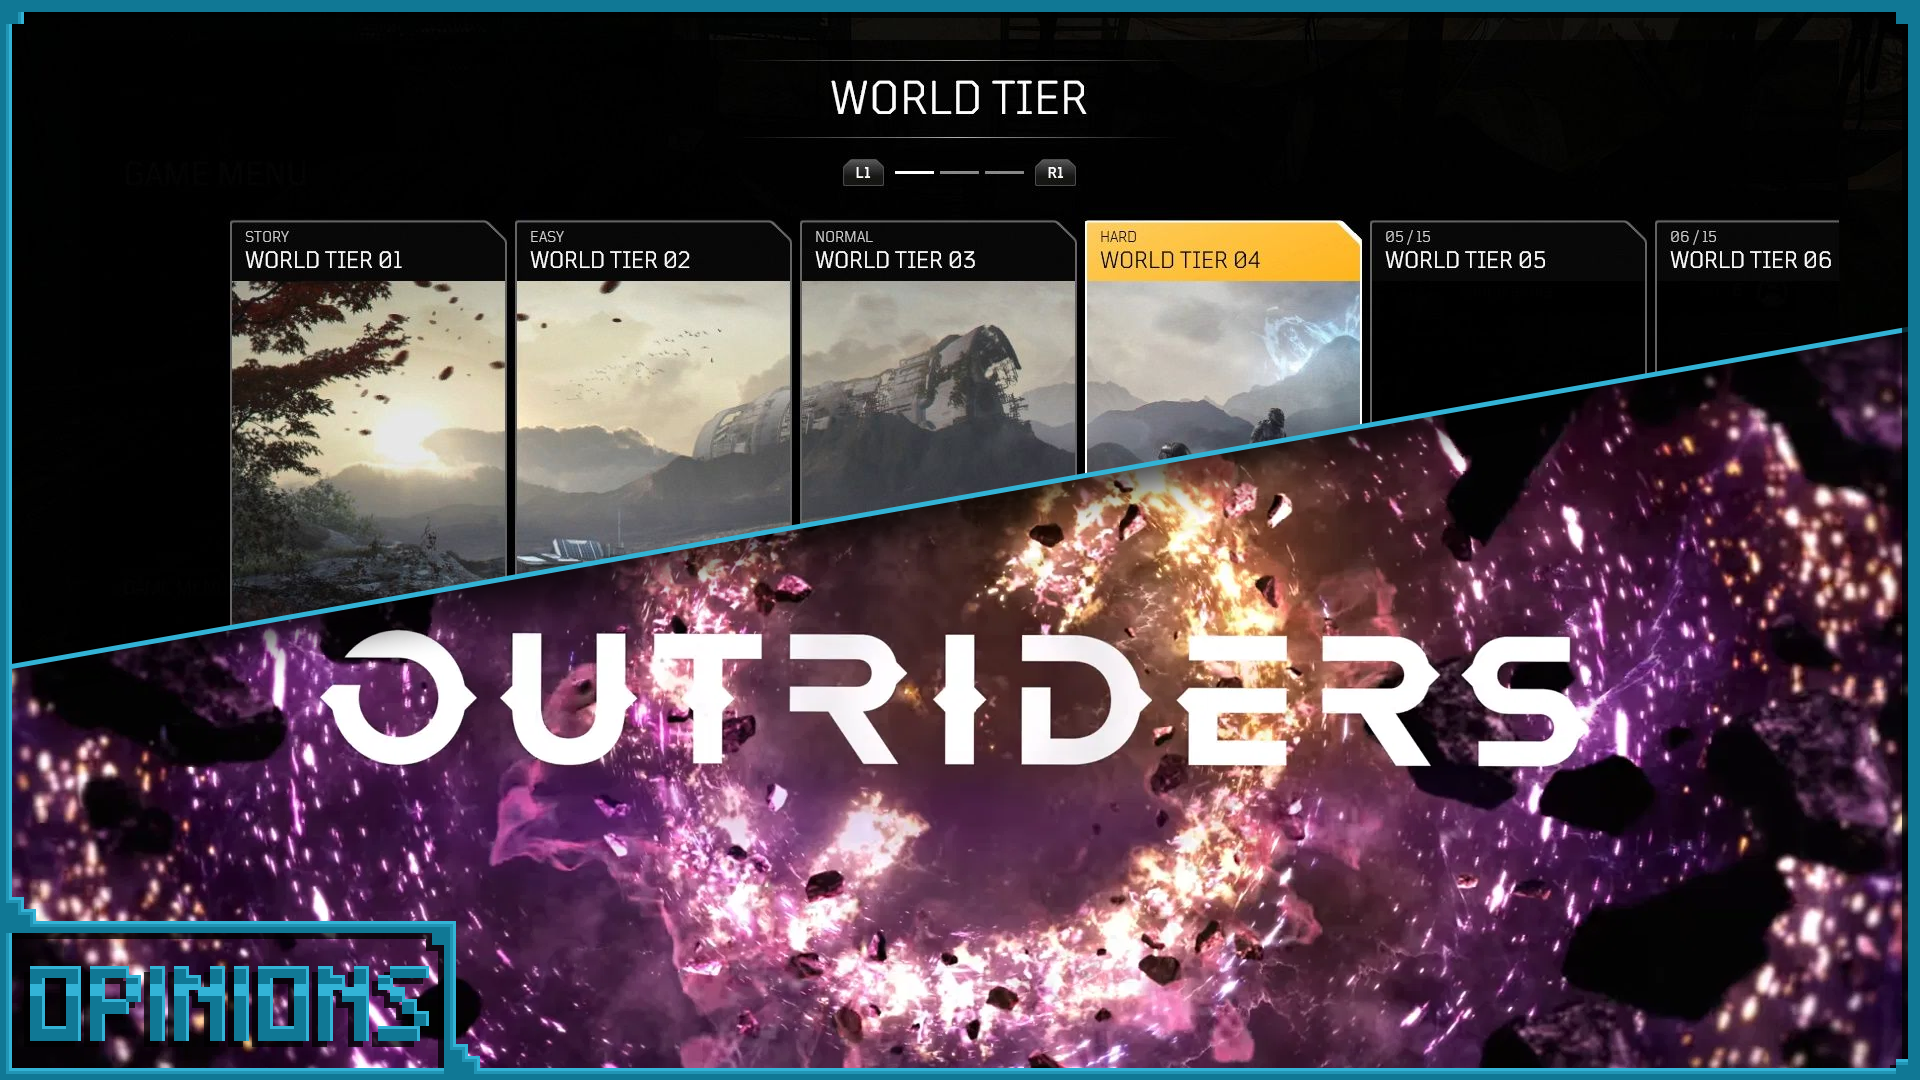 Outriders World Tier main image